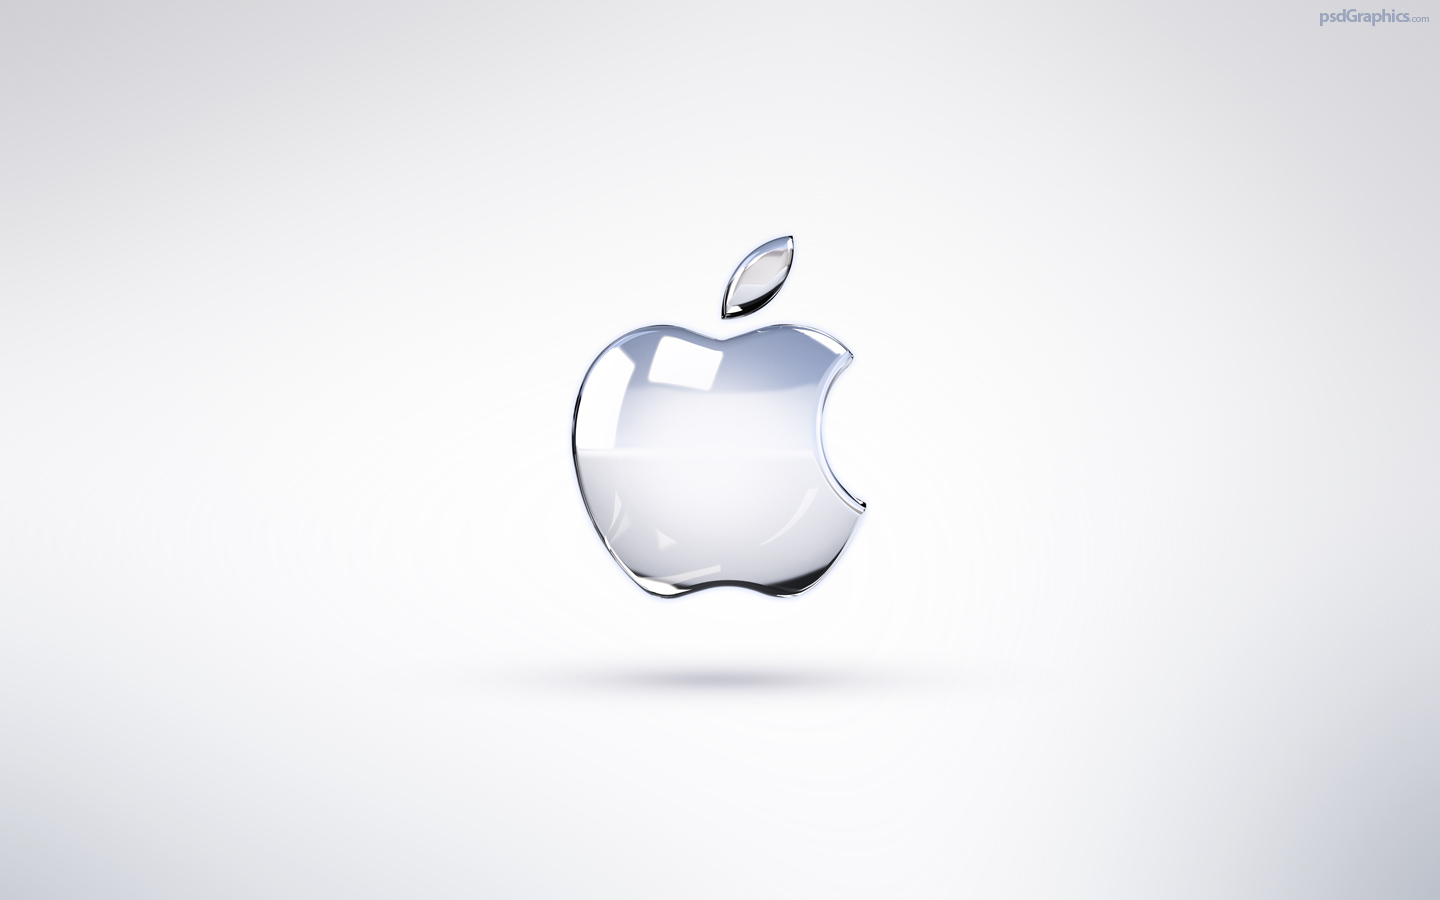 Bright Apple Logo Wallpaper Psdgraphics